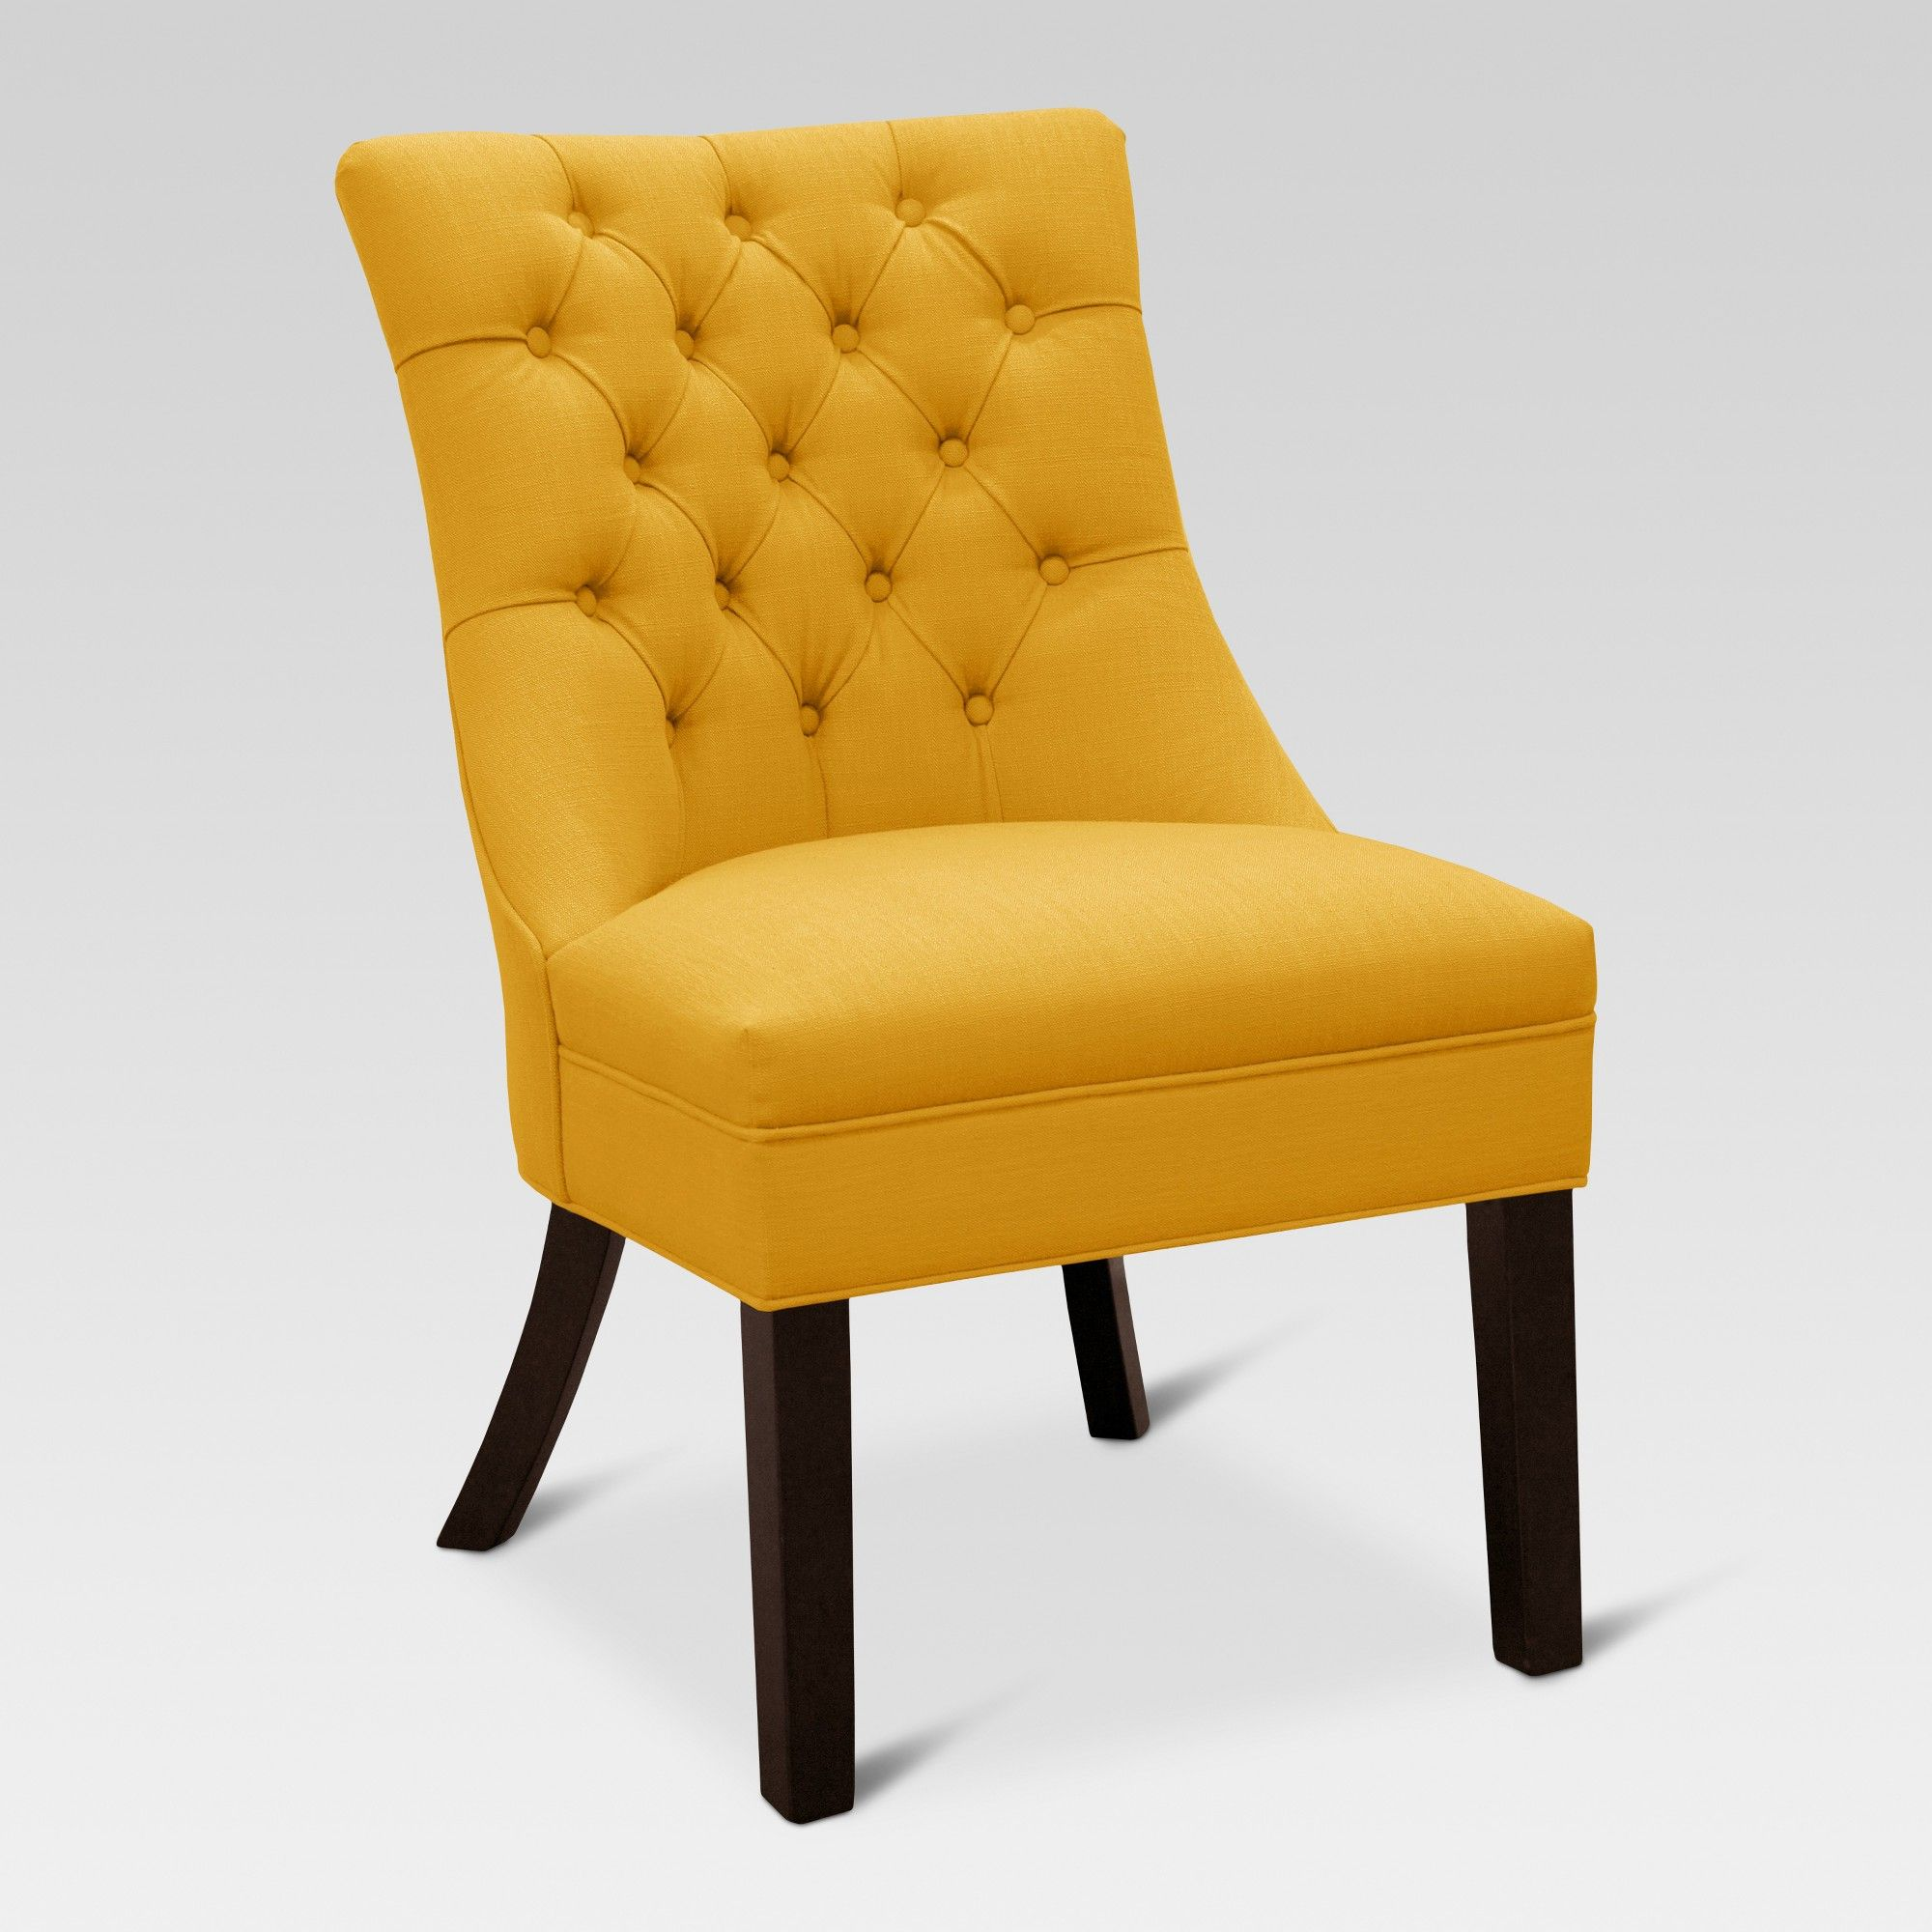 Accent Chairs Ikea Chair Design Considerations Mustard Yellow Threshold Products Pinterest Rocking